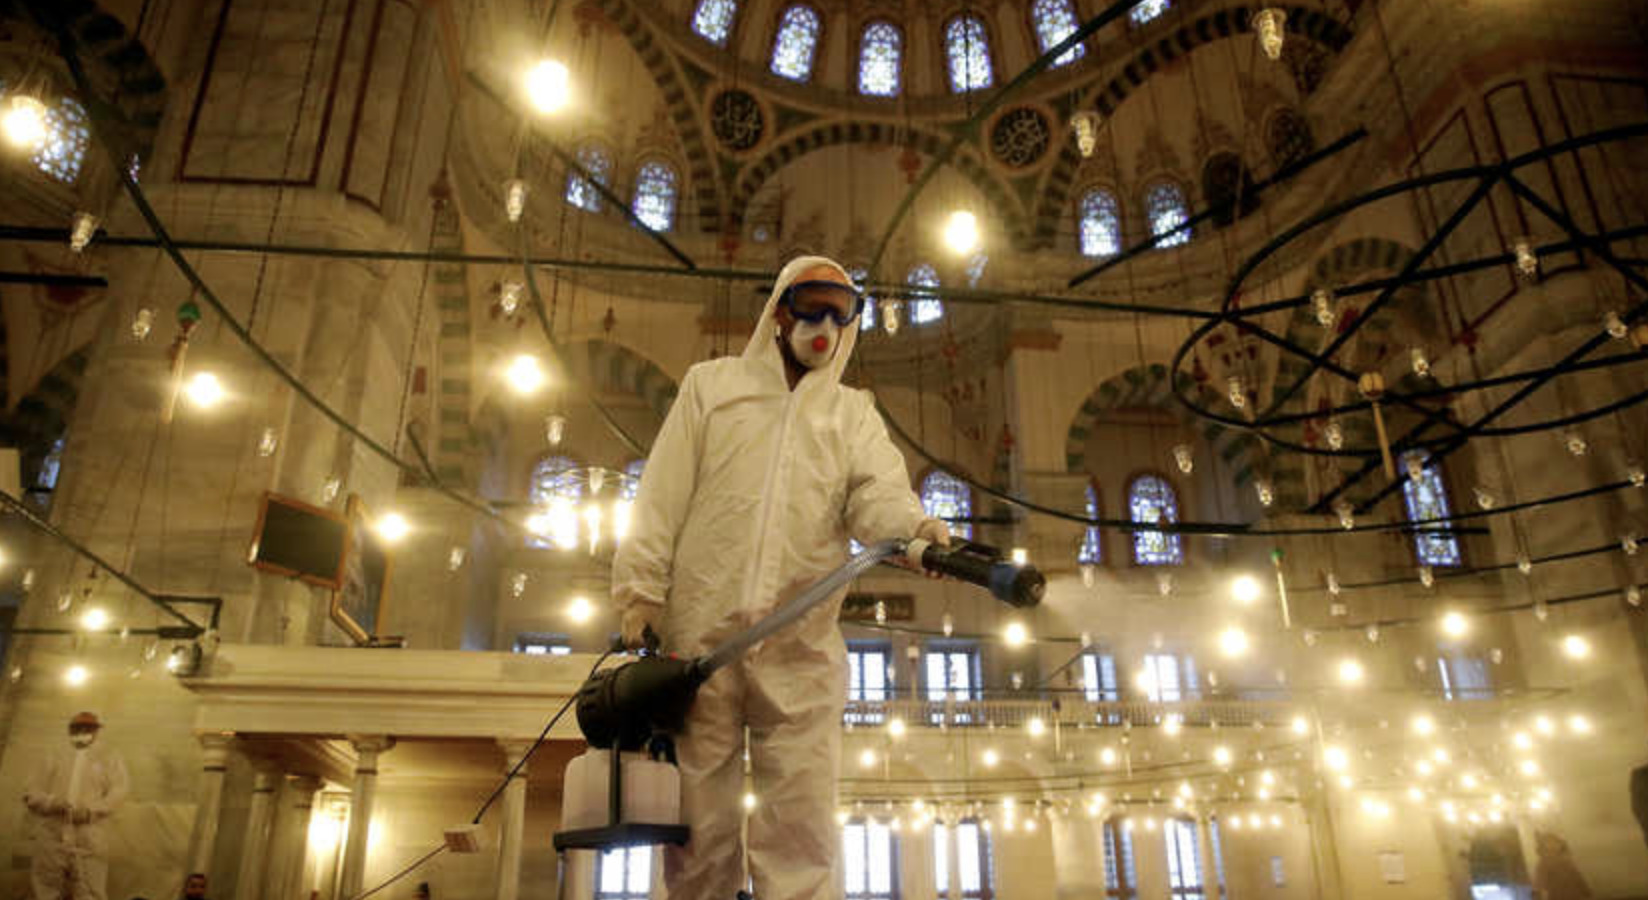 A worker in protective clothing disinfects the Fatih Mosque in Istanbul, 14 March 2020 (https://www.al-monitor.com/pulse/originals/2020/03/turkey-coronavirus-spread-case-triple.html)